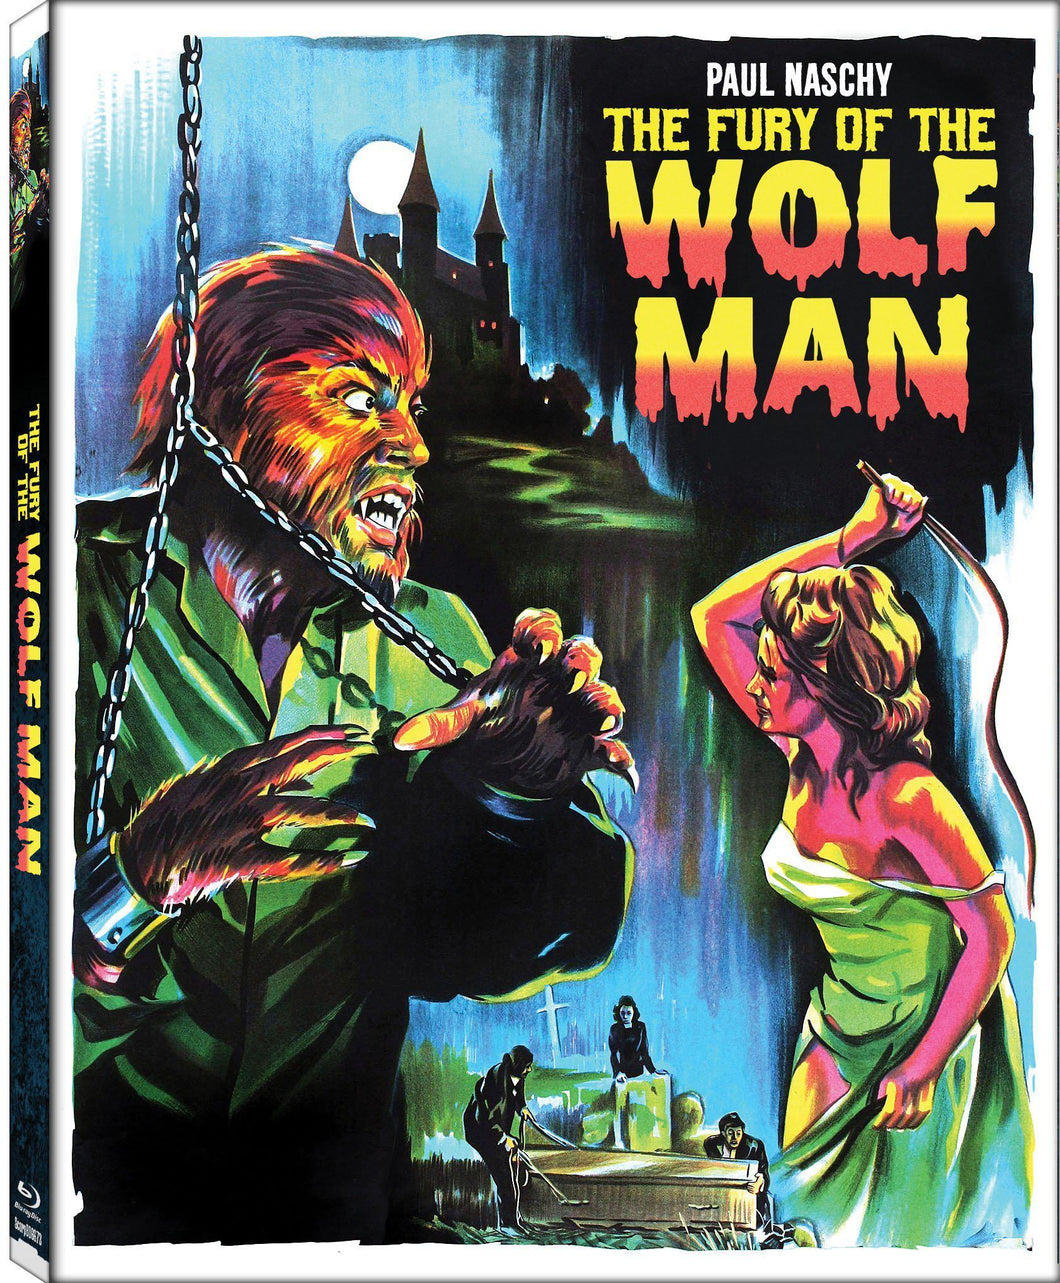 The Fury of the Wolfman (Blu-ray): Ronin Flix - Slipcover